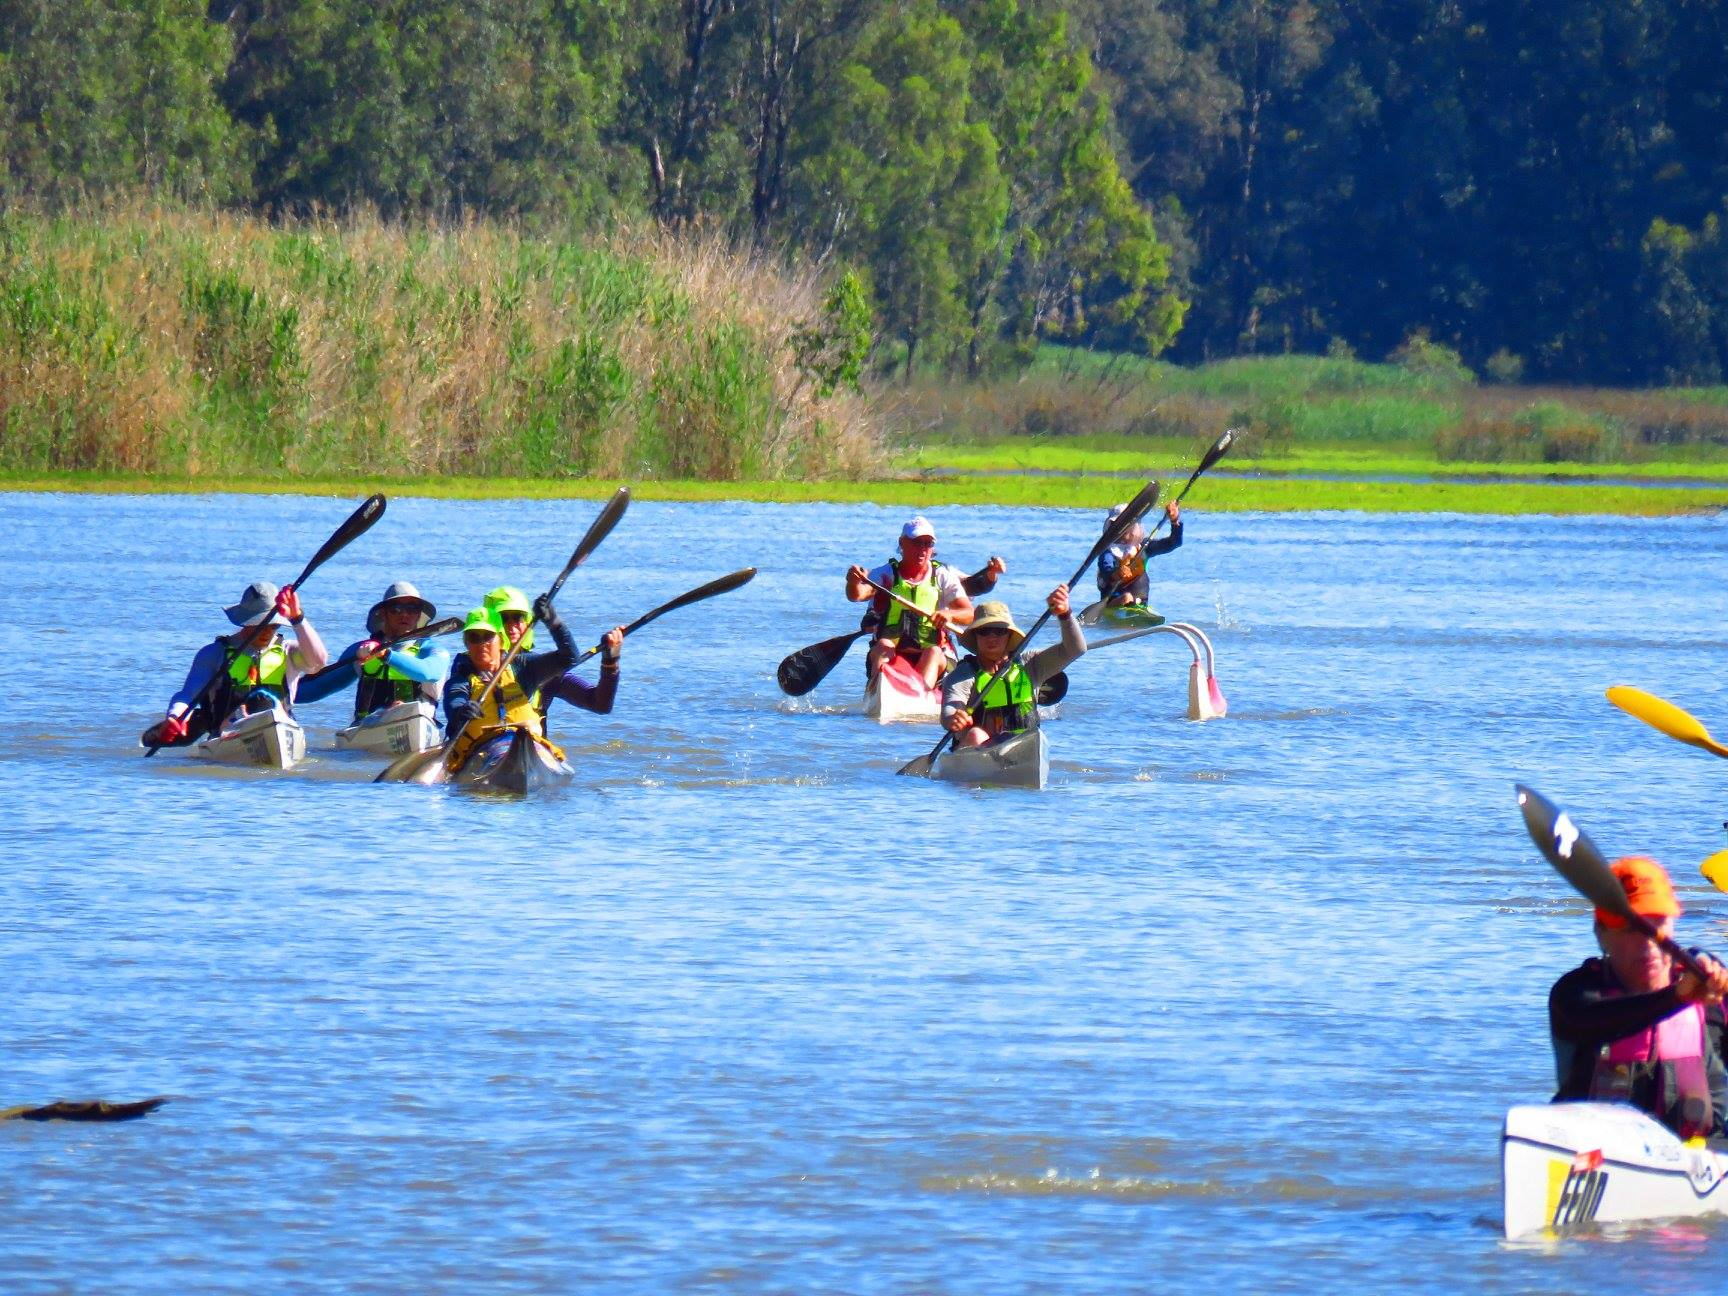 Competitors paddling down the Murray River